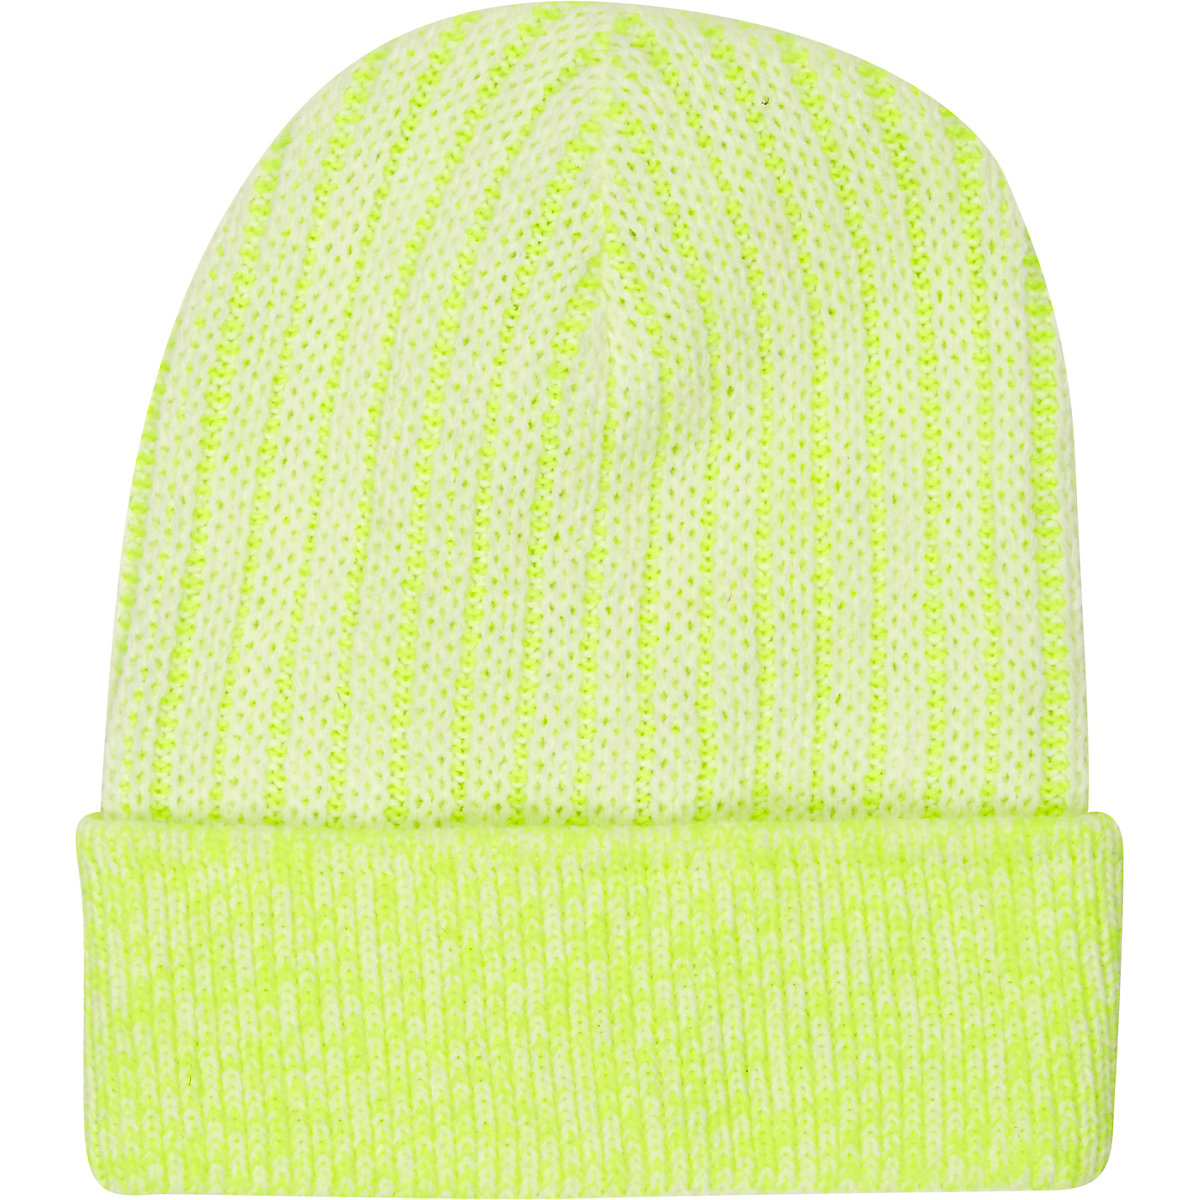 Yellow bright rib knitted beanie hat - Hats - Accessories - women c25c1241aec